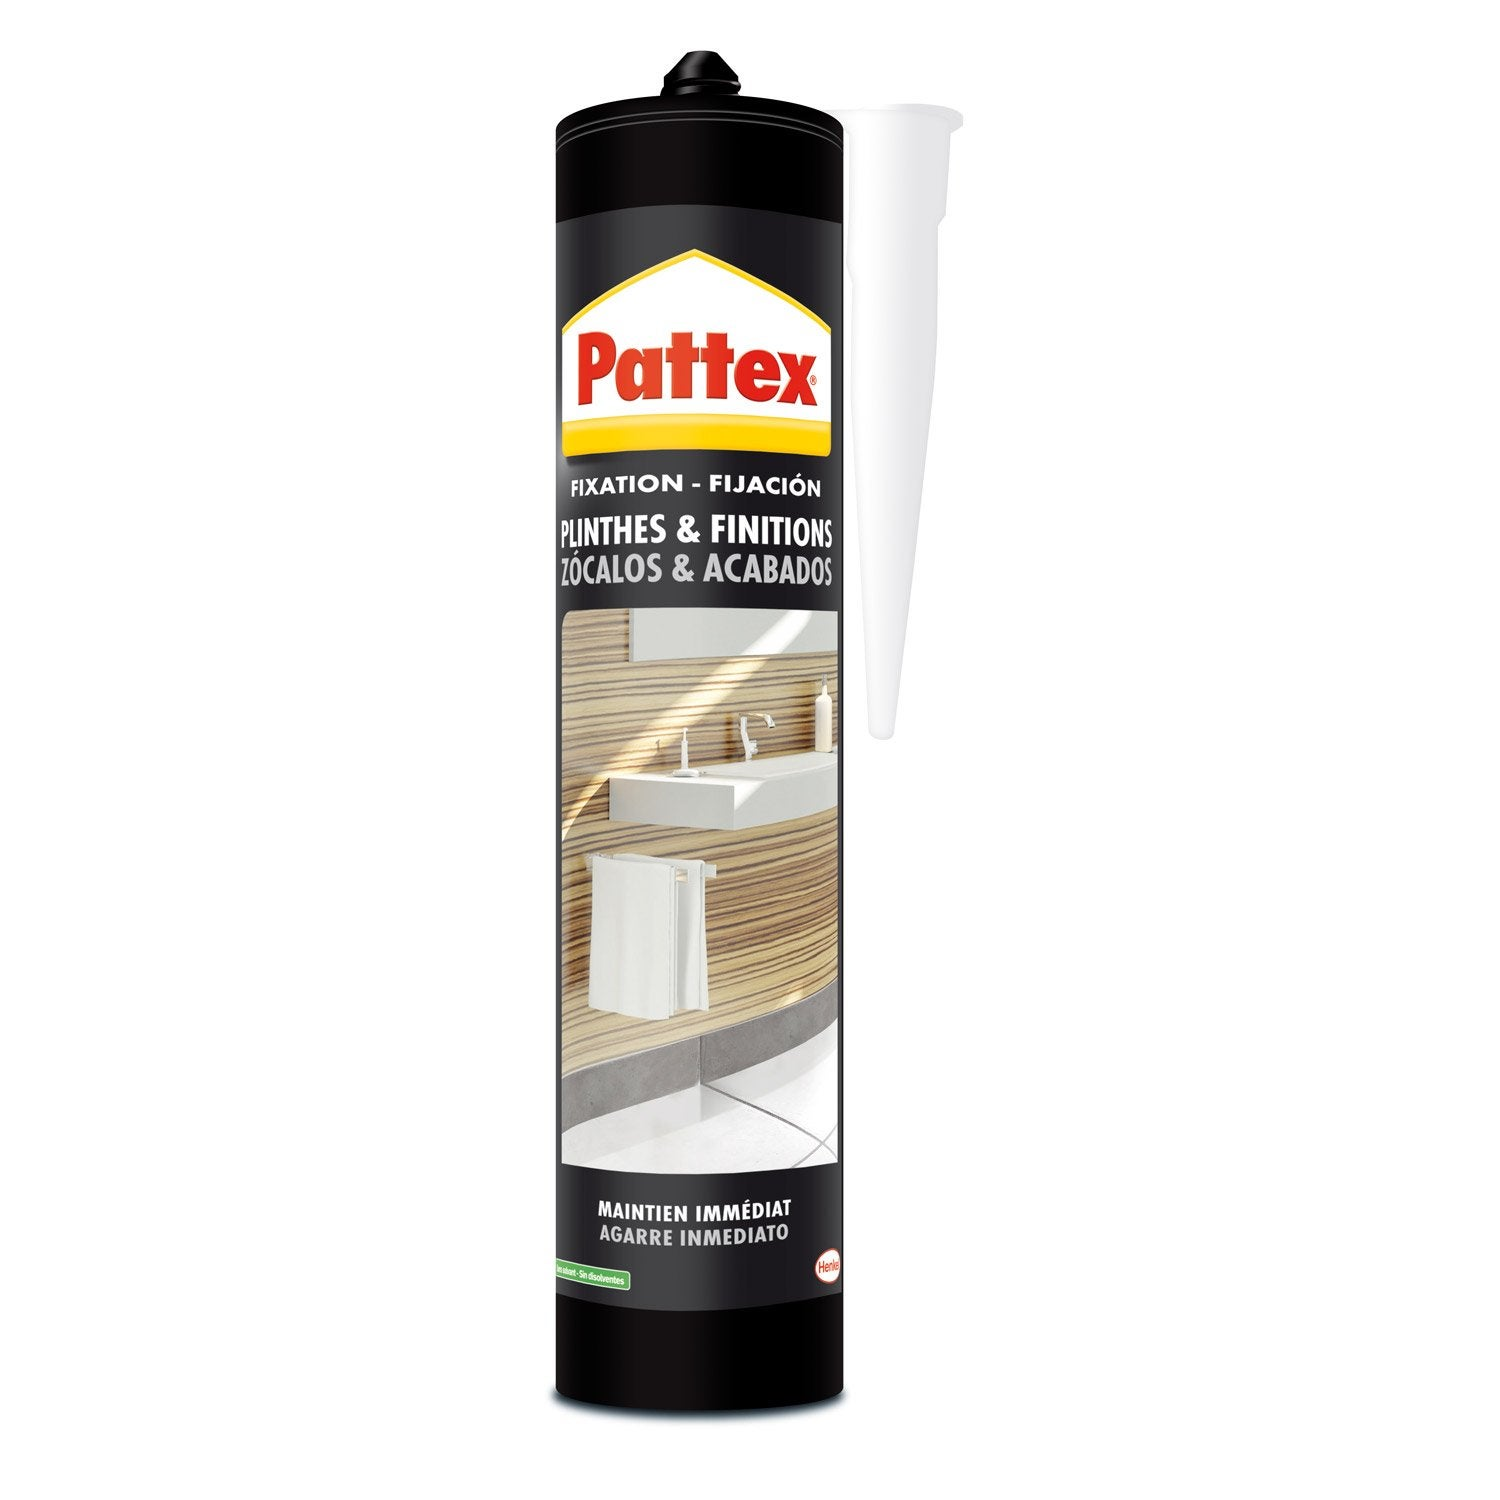 Colle mastic plinthes carrelages pattex 450 g leroy merlin - Colle carrelage exterieur leroy merlin ...